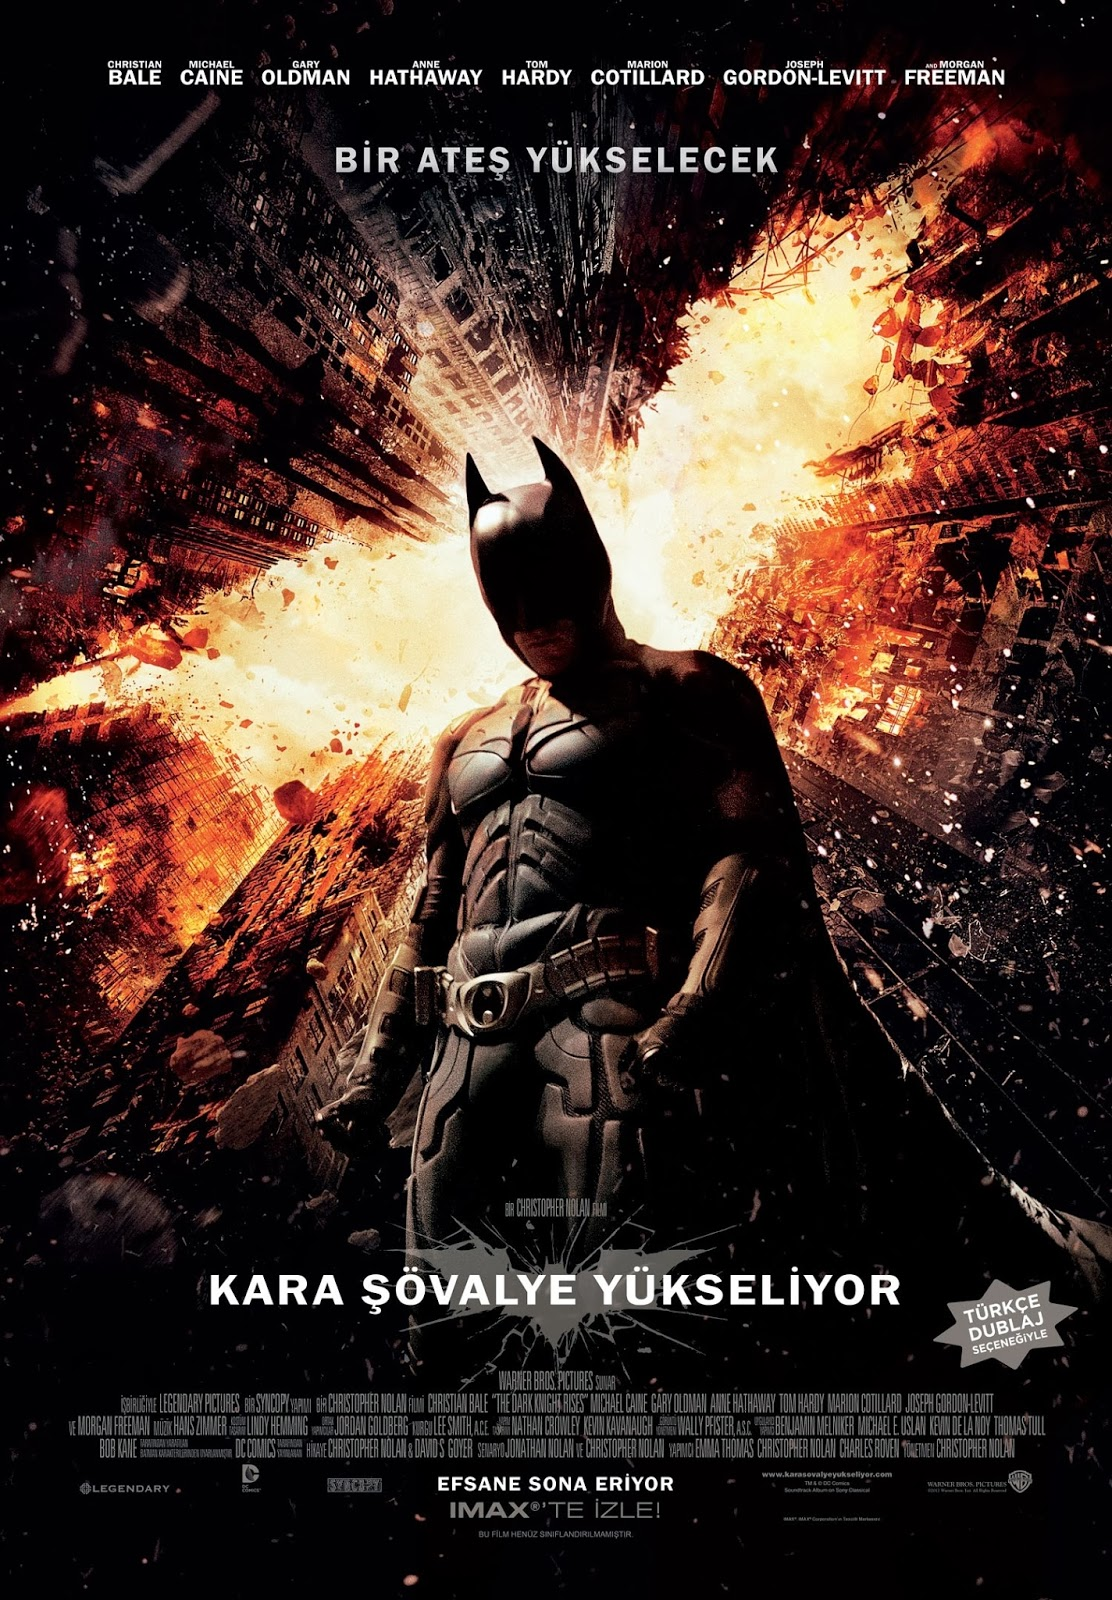 Kara Şovalye Yükseliyor - The Dark Knight Rises 2012 BluRay 1080p Film İndir